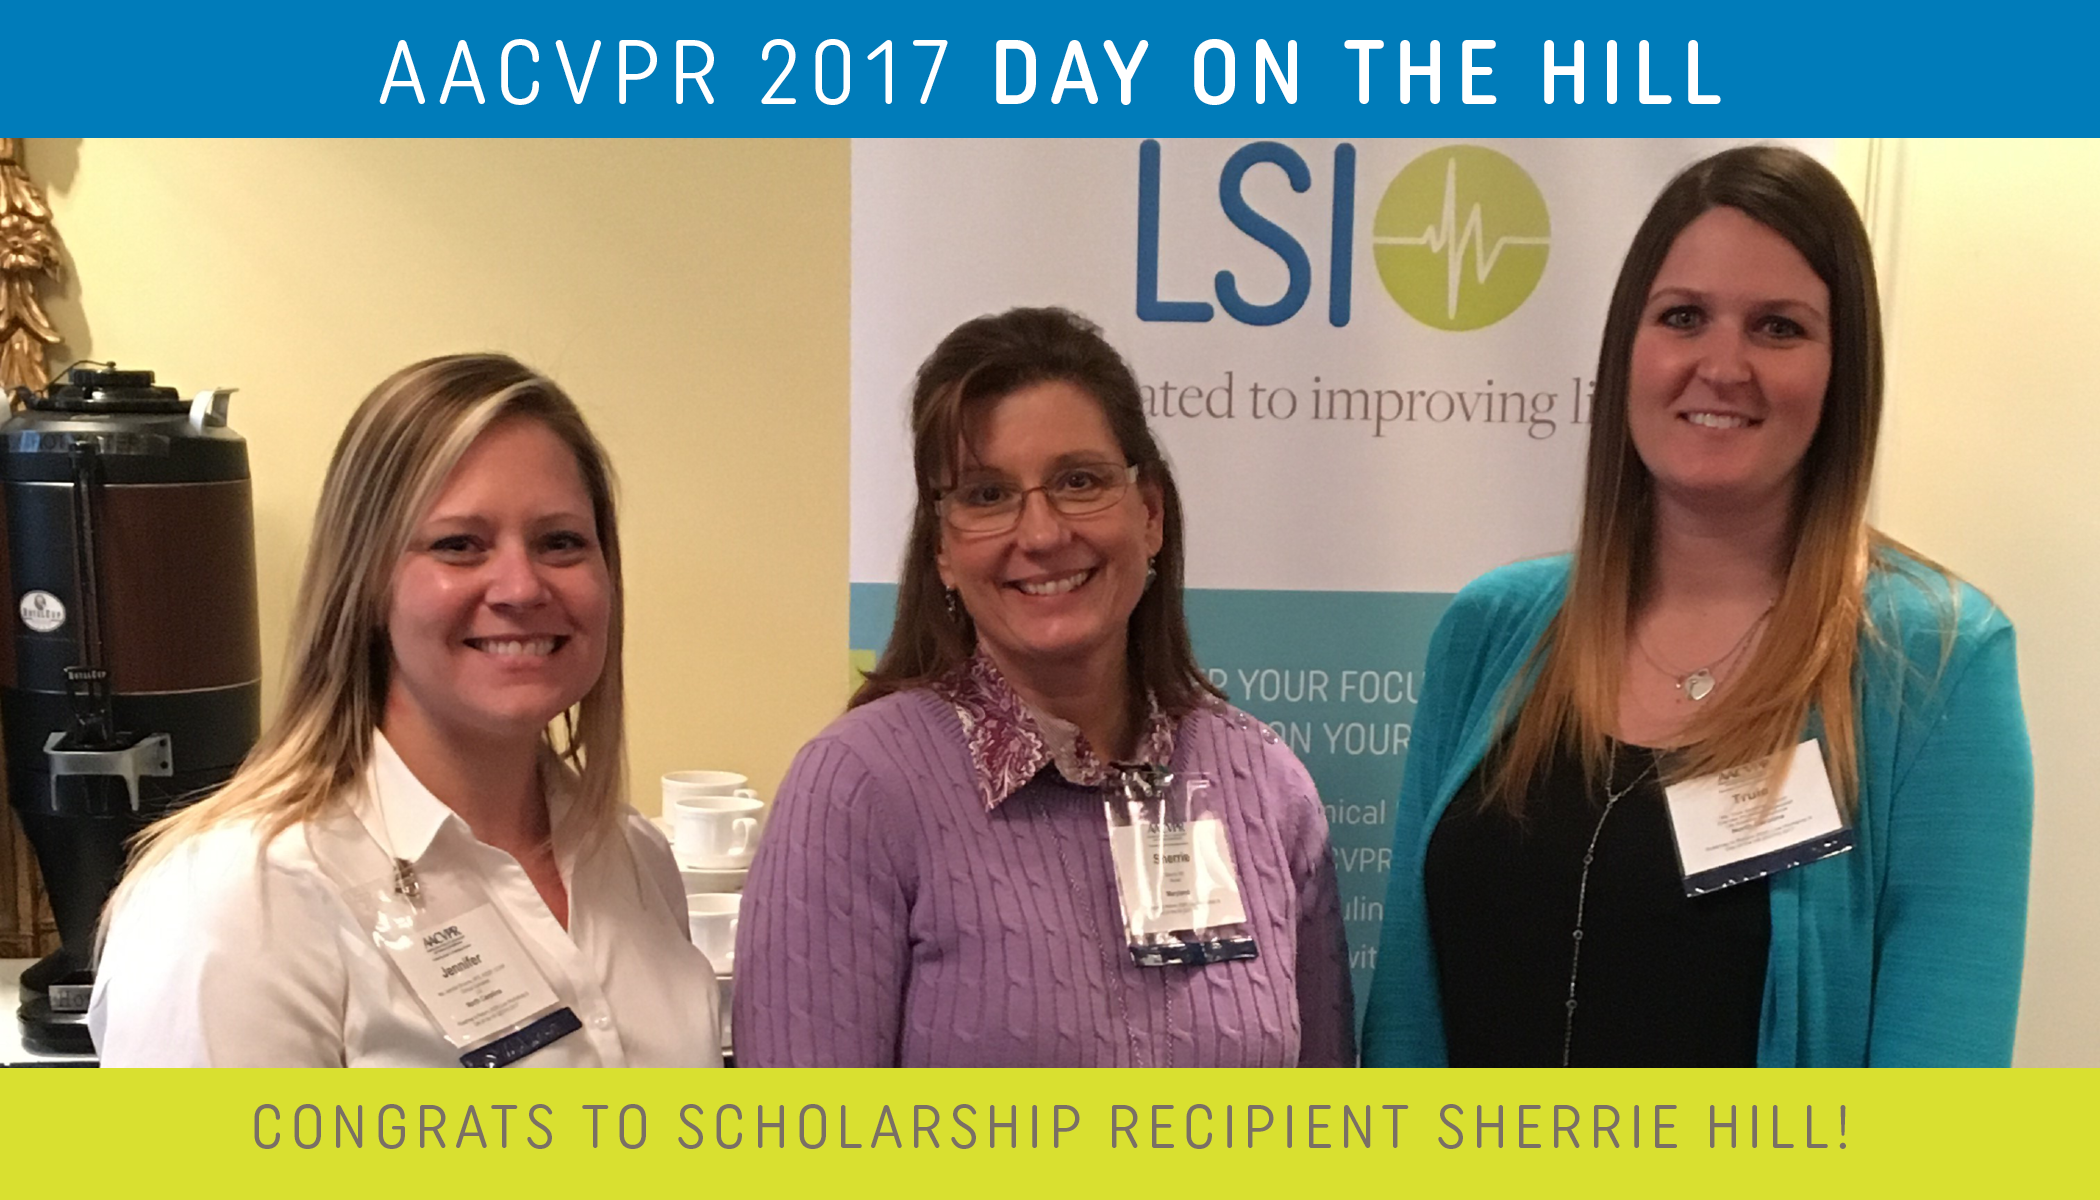 2017 Day on the Hill Scholarship Recipient